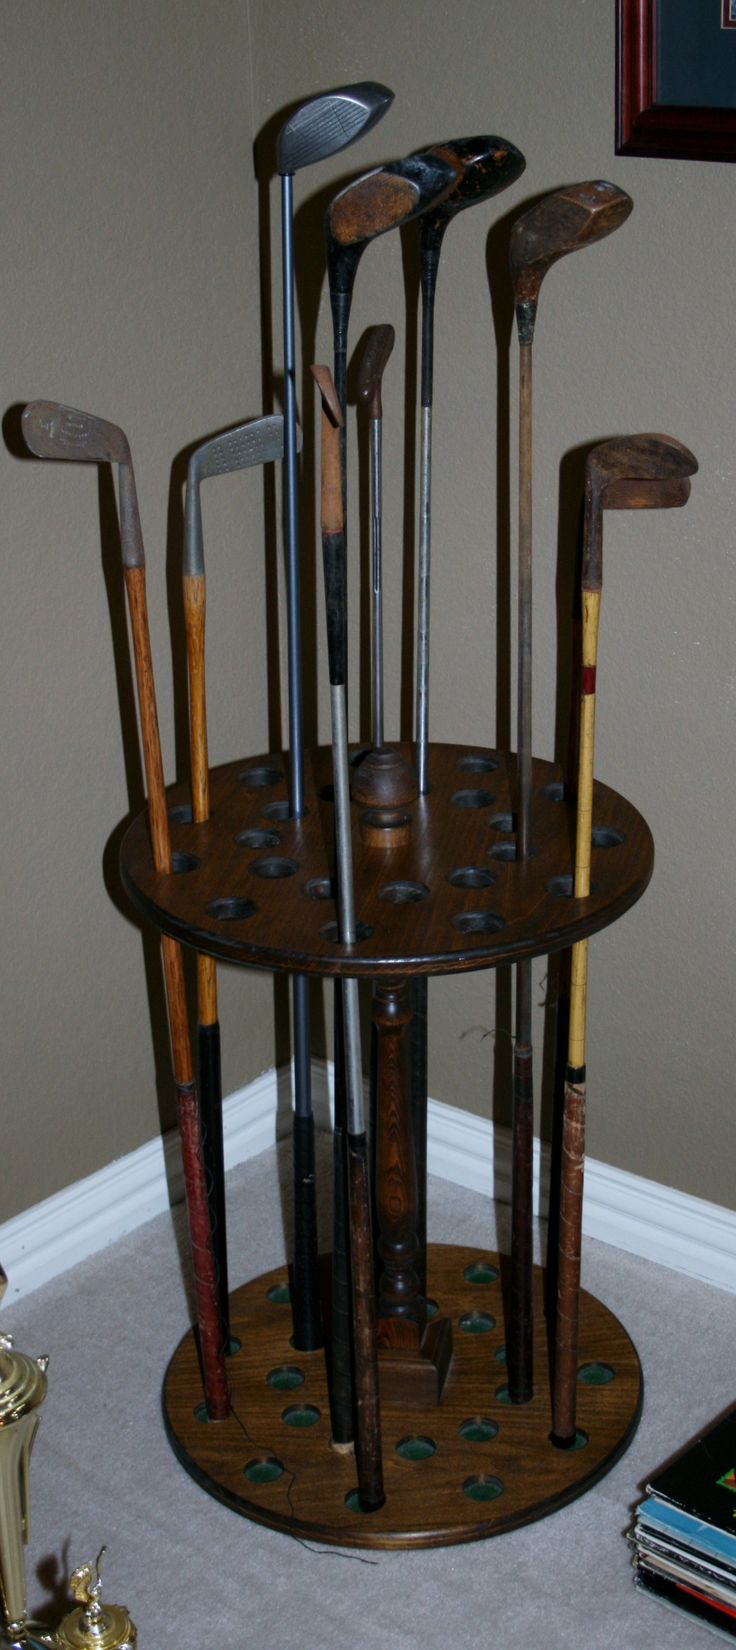 Unique way to display vintage golf clubs (available at 3F's next estate sale)